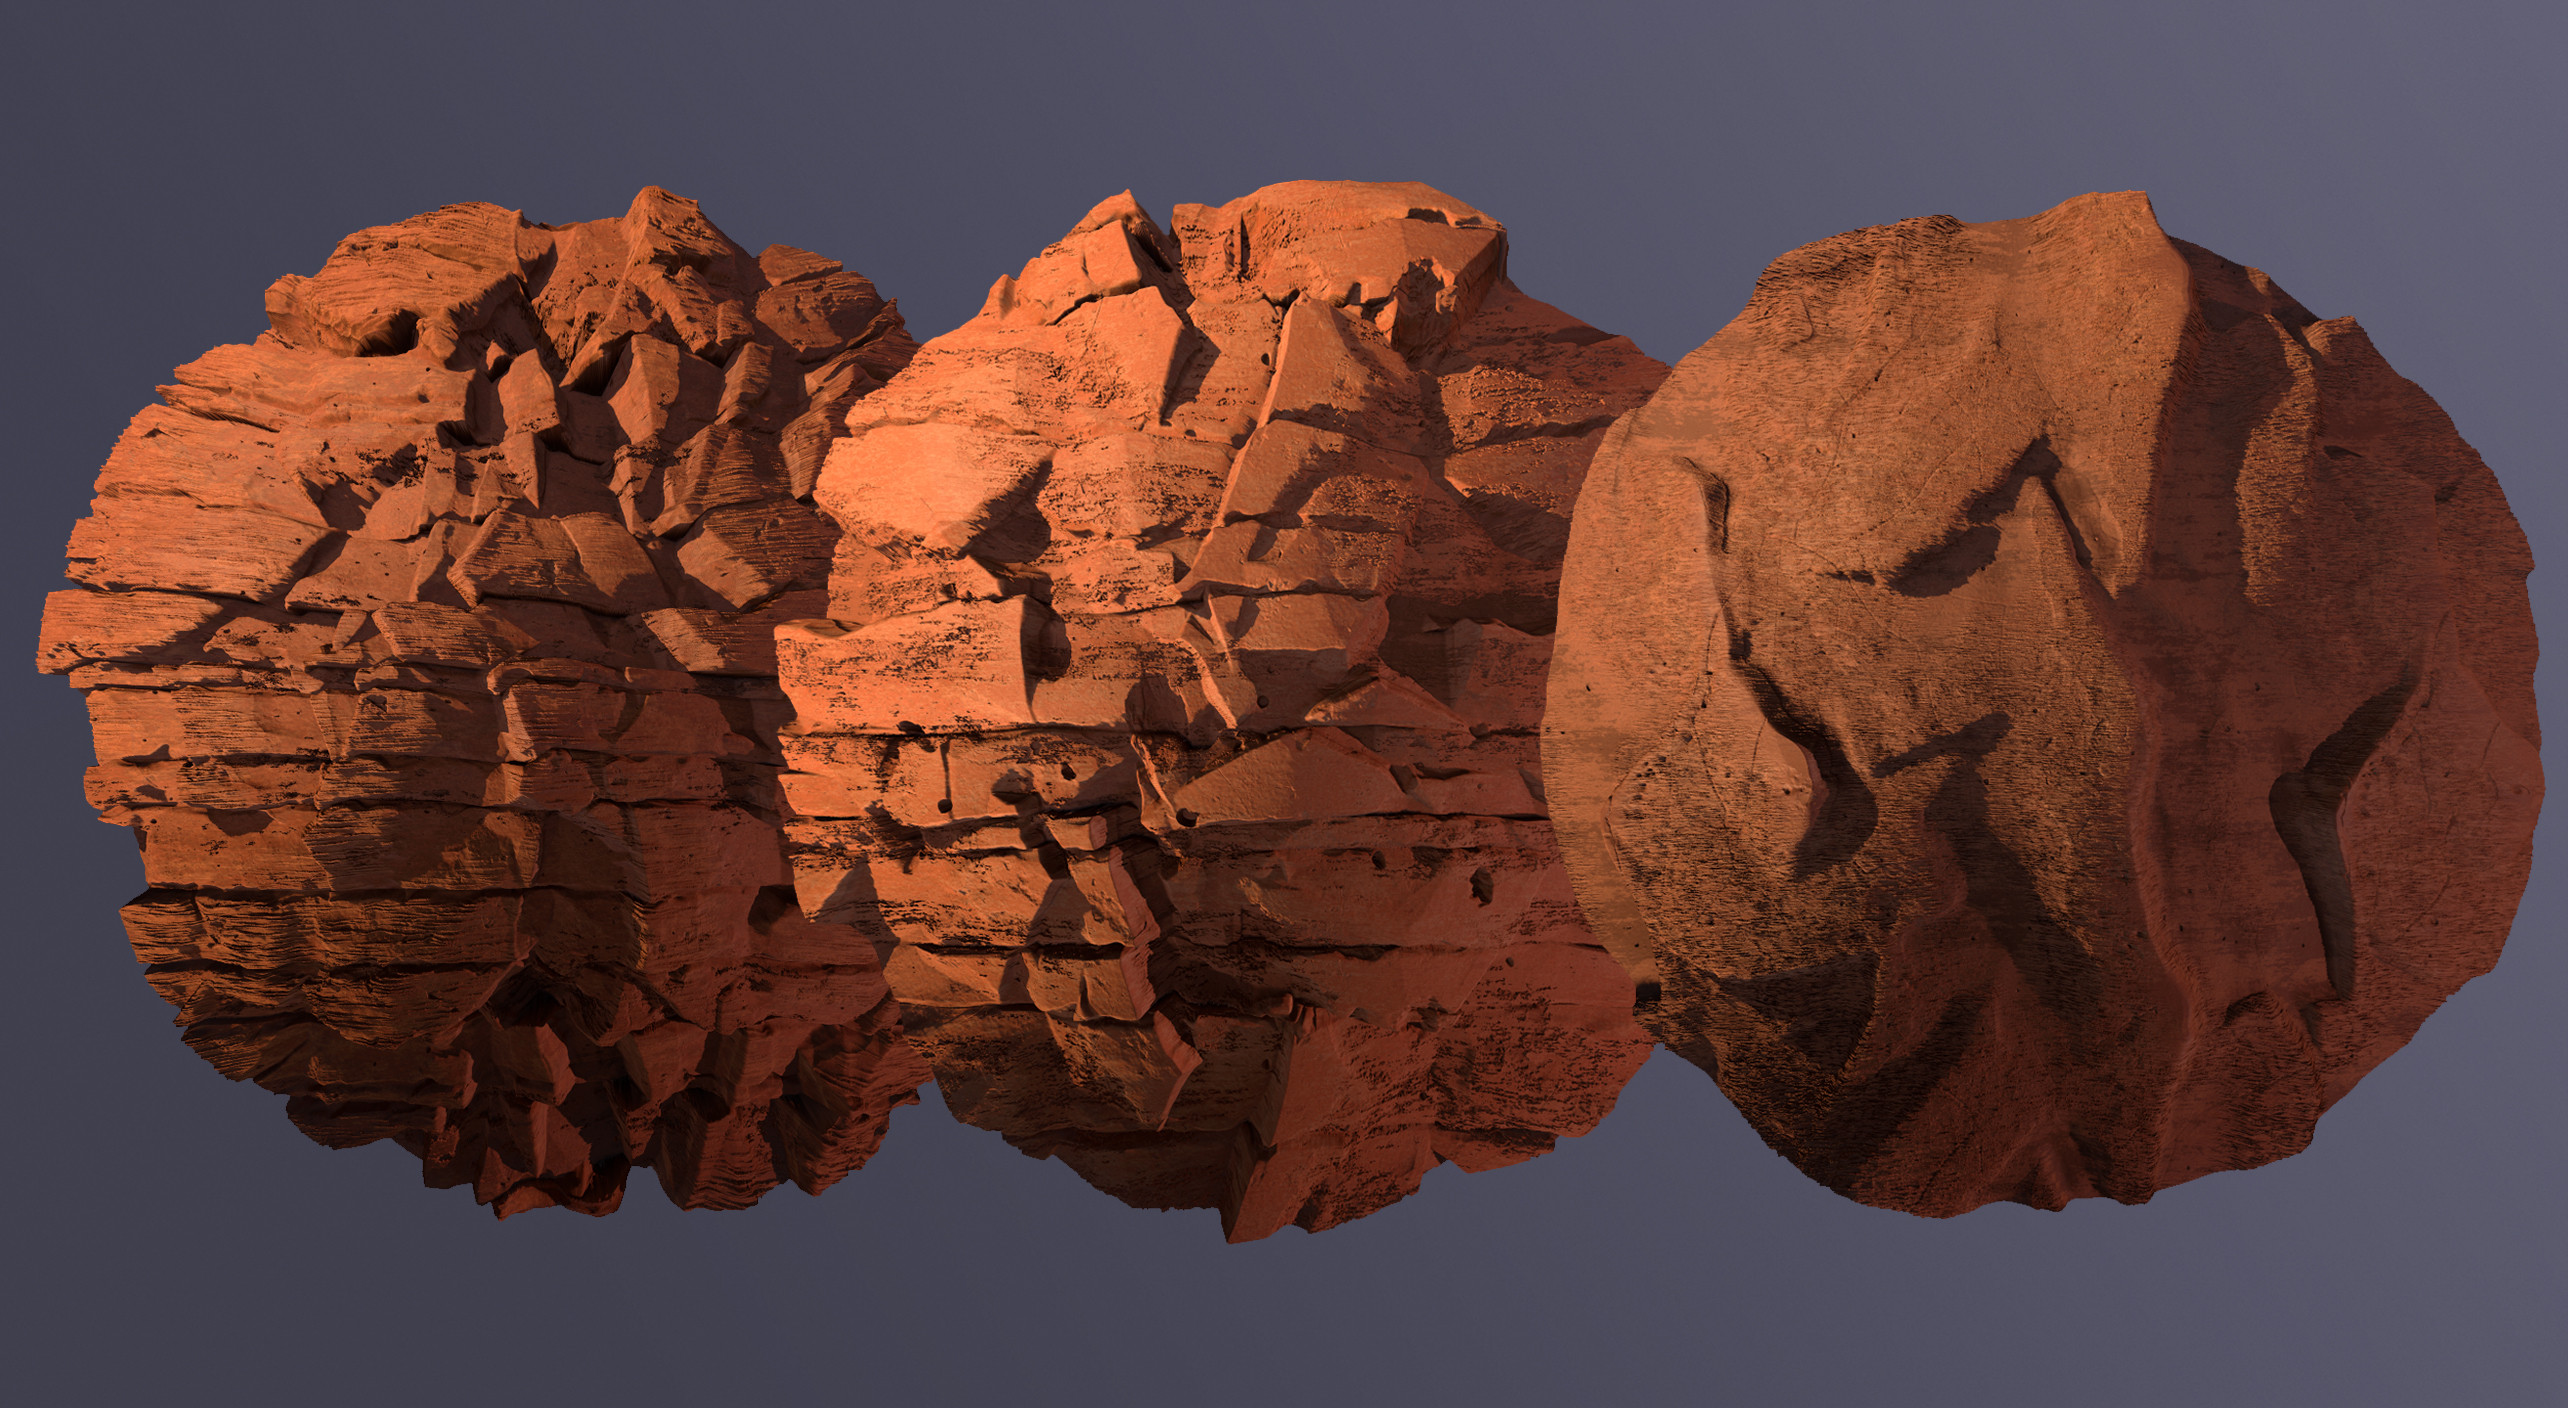 The 3 Materials that make up the rocks in engine, made in SD rendered in marmoset